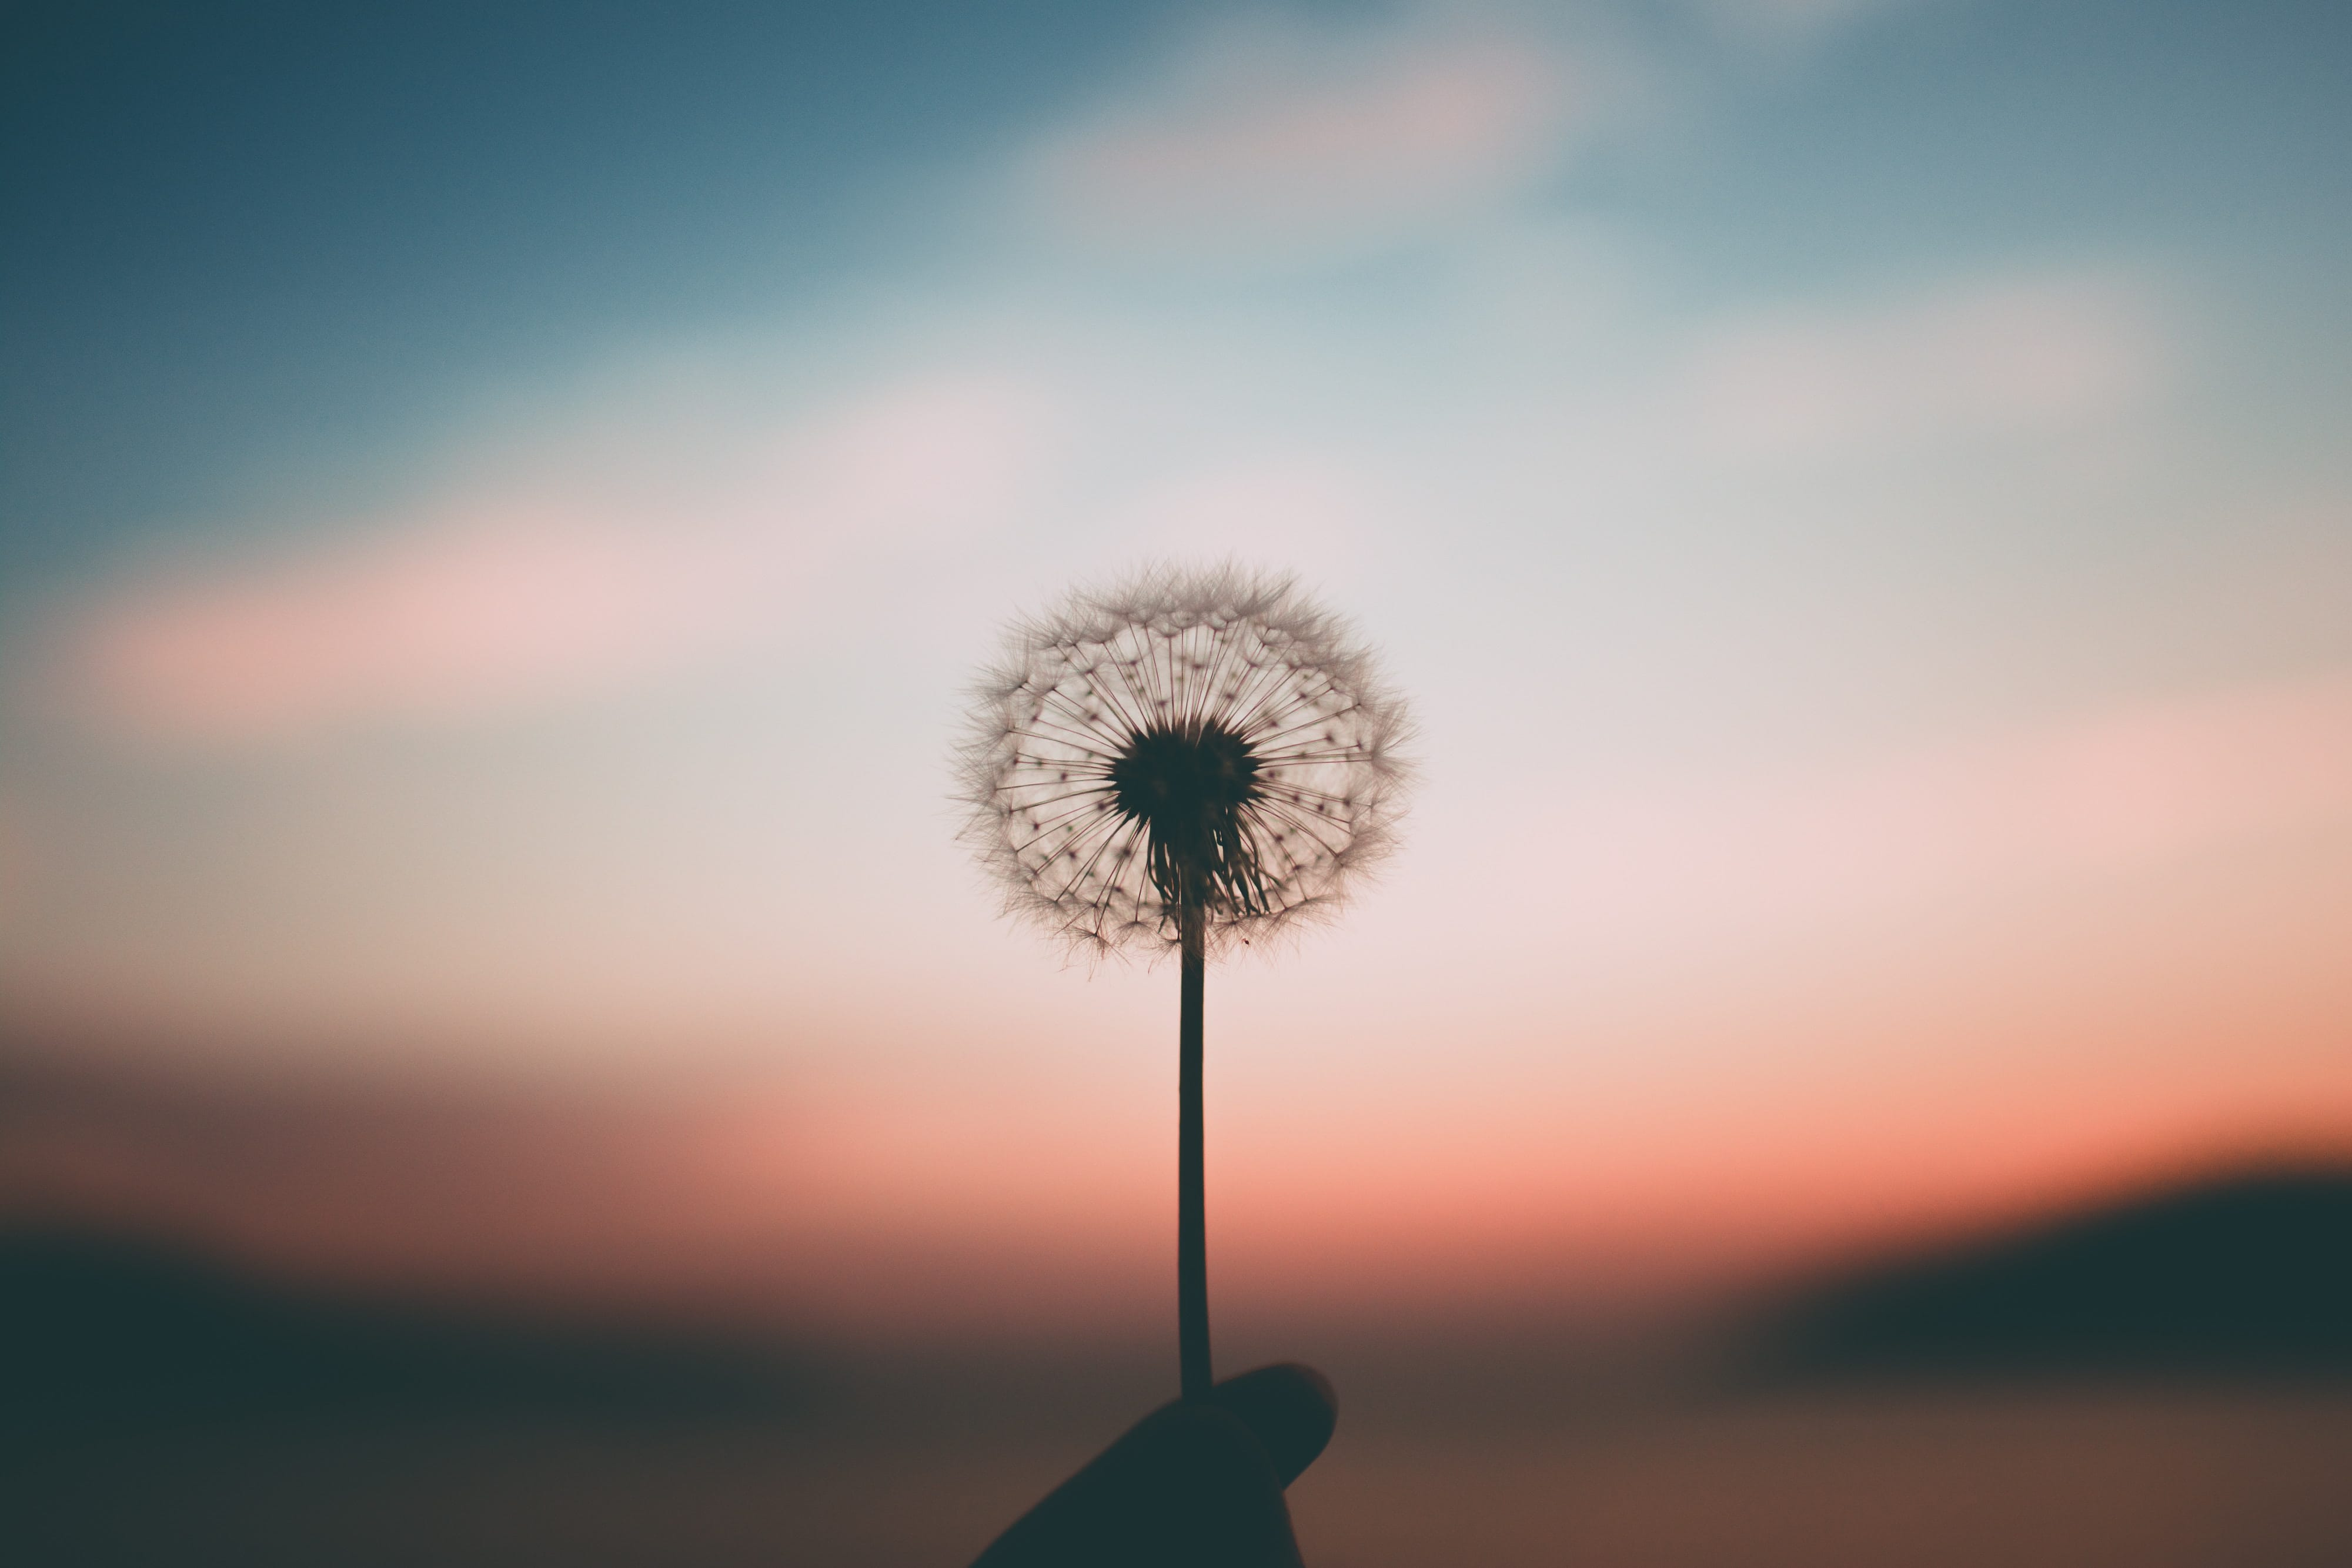 Wind blows a dandelion and pieces of it fly gently into the air all in front of a sunset